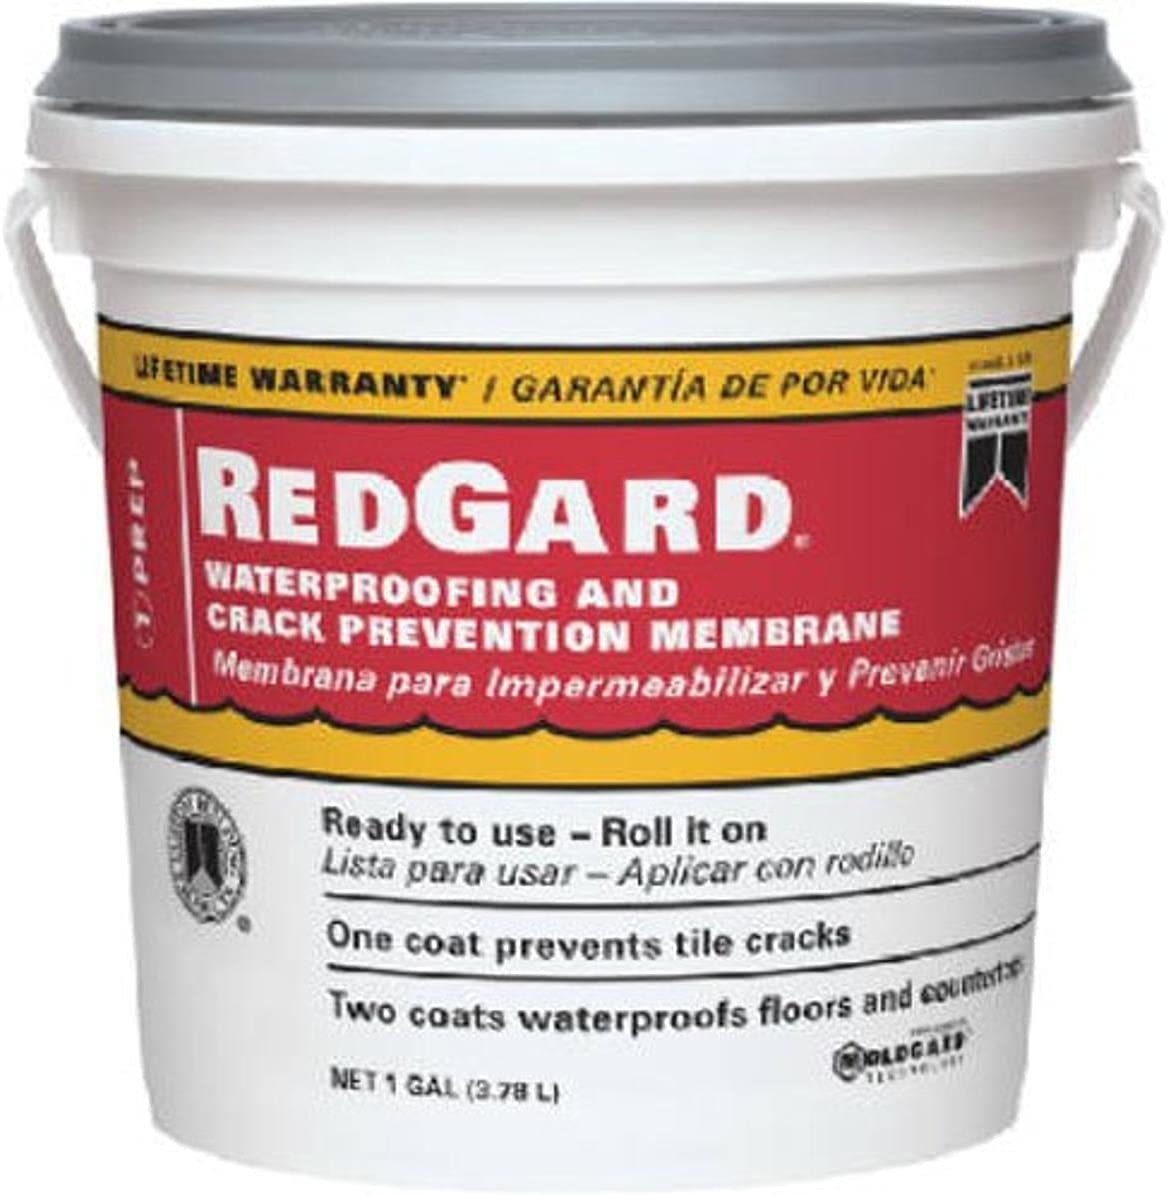 CUSTOM BLDG PRODUCTS LQWAF1-2 sold Miami Mall out Redgard gal 1 Waterproofing